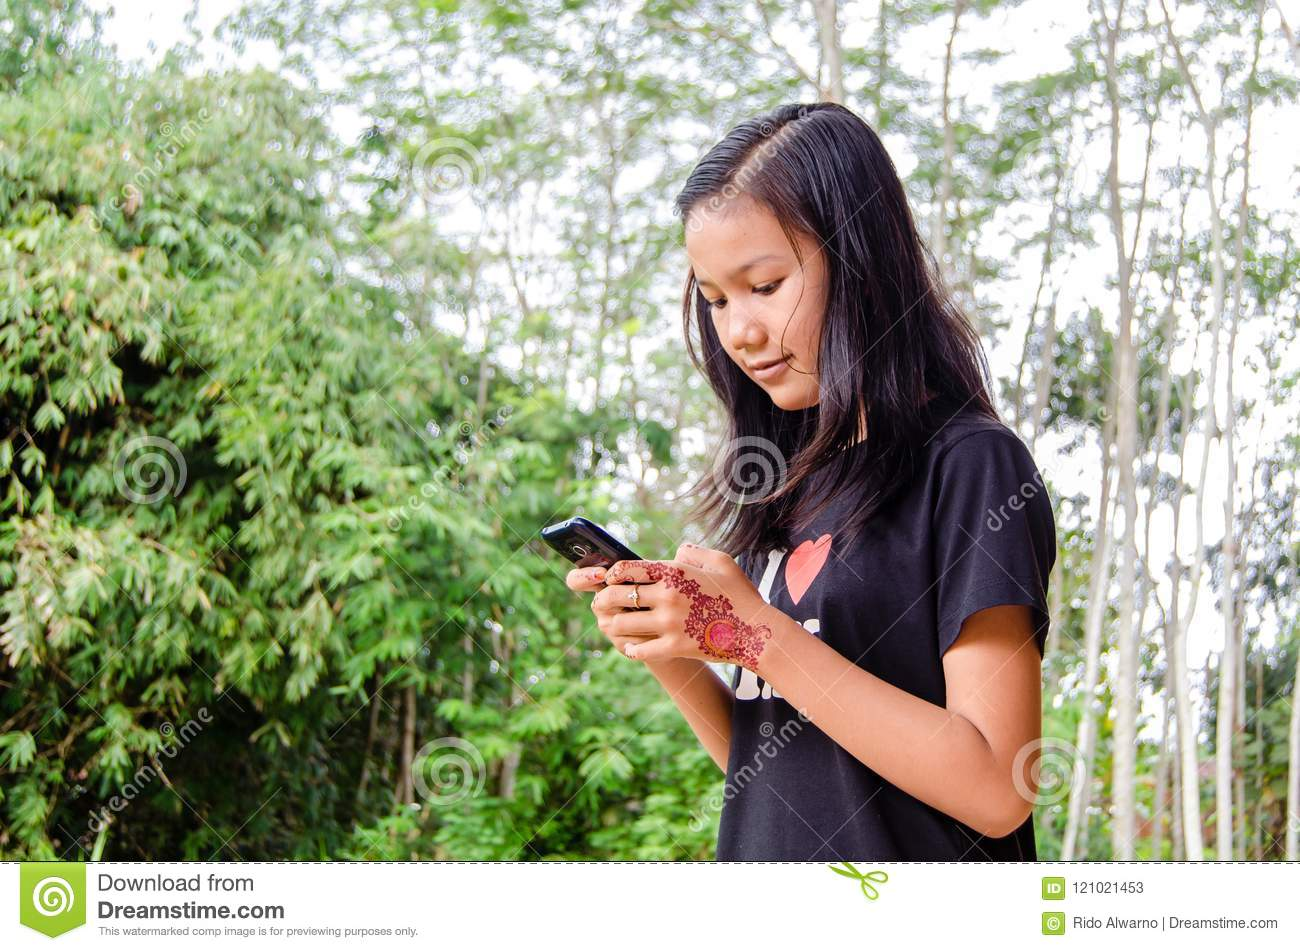 A girl is using a smartphone